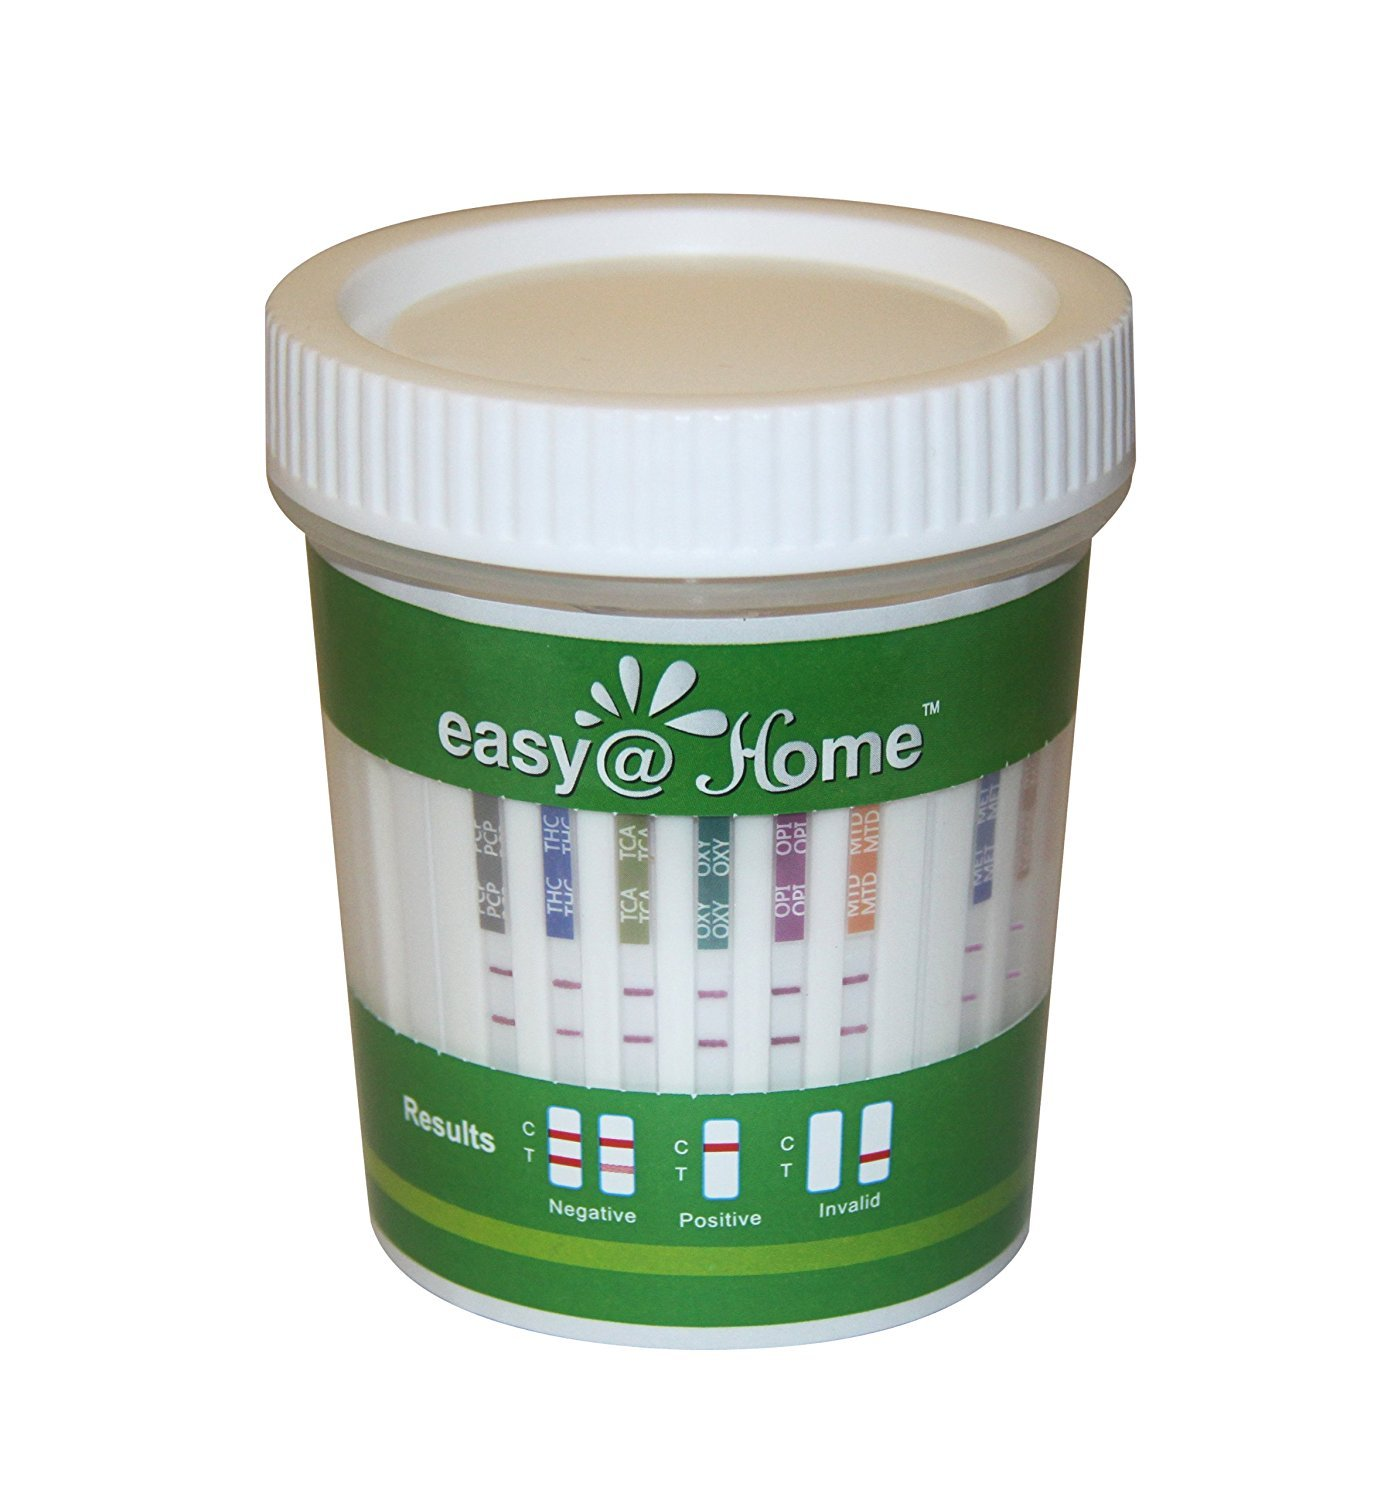 5 Pack Easy@Home 14 Panel Instant Drug Test Cup Kit With 3 Adulterations And Temperature Strips, Testing 14 Drugs BUP,THC,OPI 2000,AMP,BAR,BZO,COC,MET,MDMA,MTD,OXY,PCP,PPX,TCA-#ECDOA-1144A3 (5 Tests) by Easy@Home (Image #2)